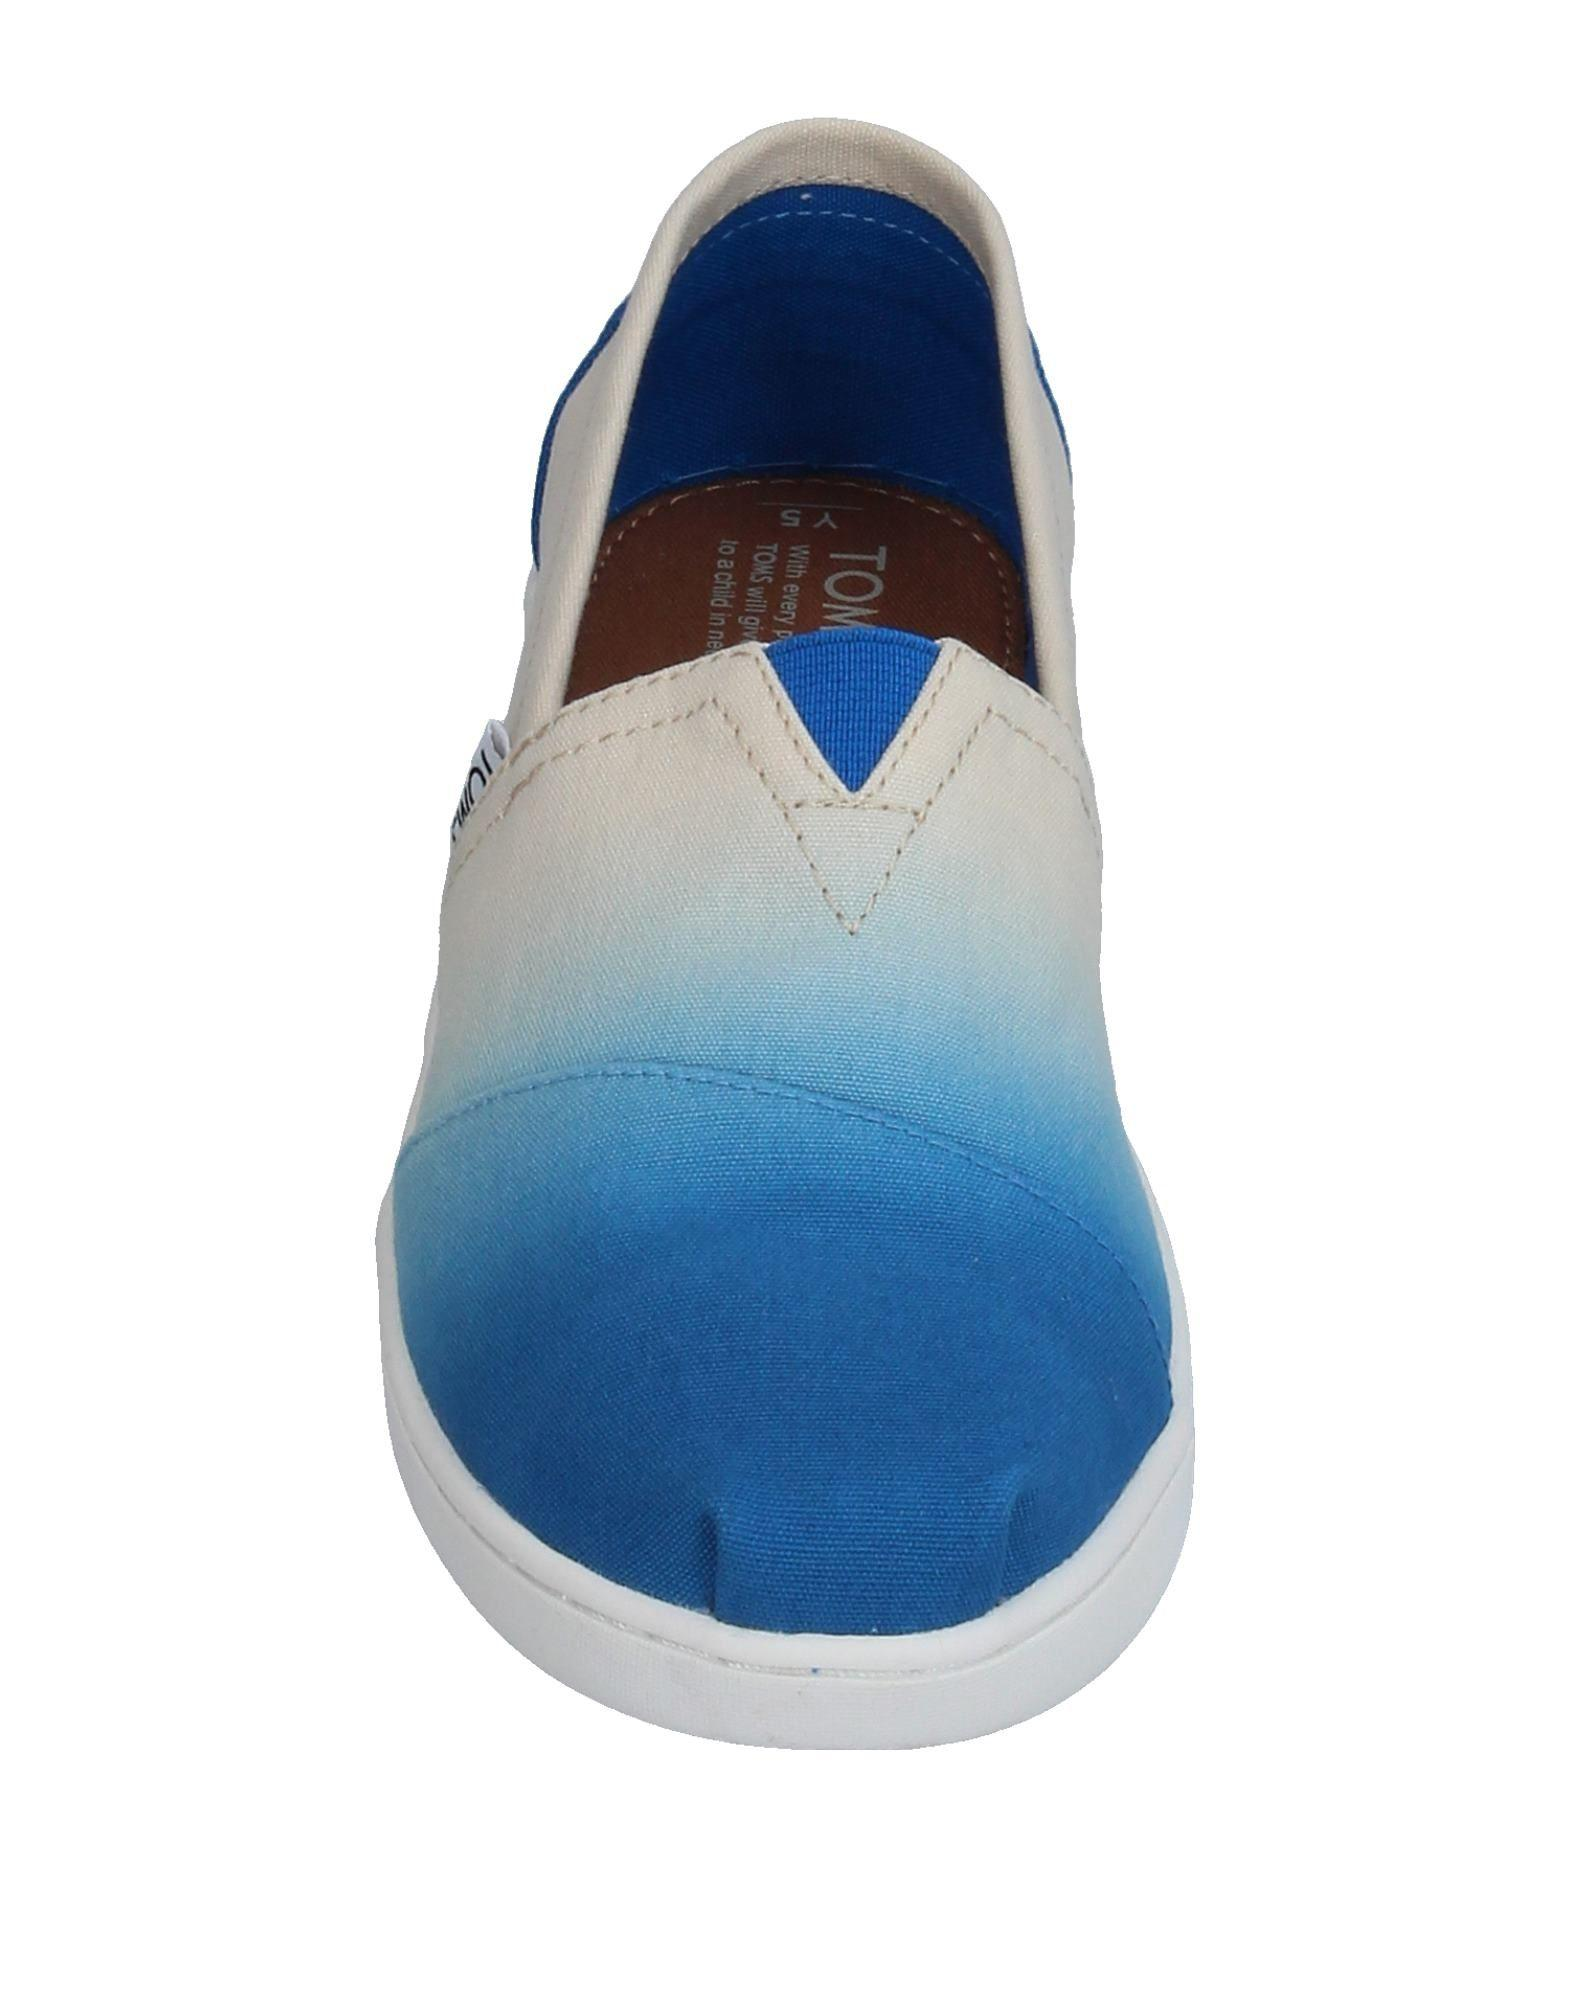 TOMS Canvas Low-tops & Sneakers in Azure (Blue)